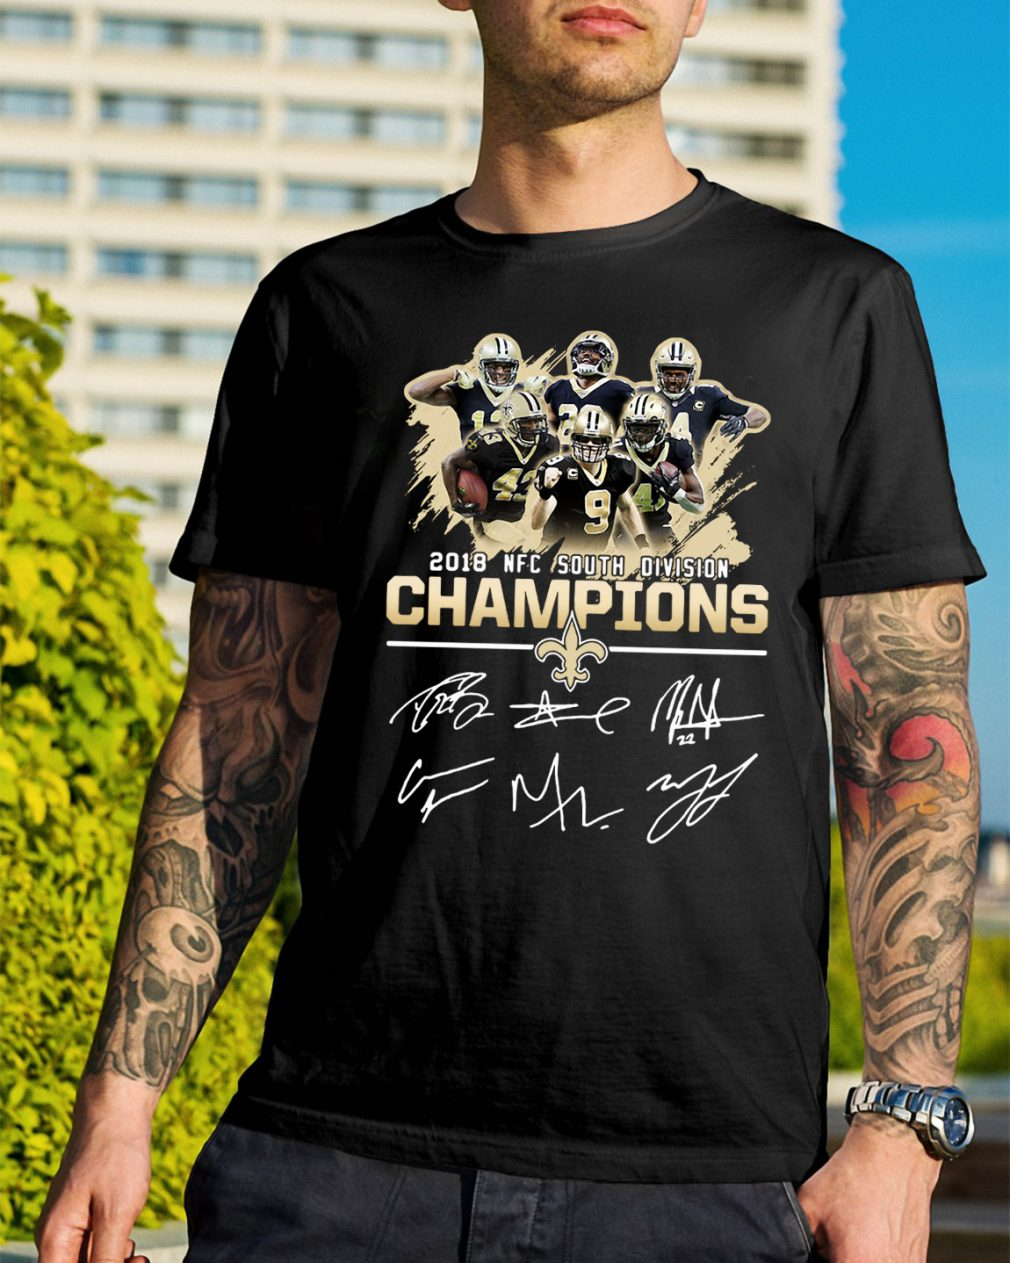 2018 NFC south division champions New Orleans Saints shirt